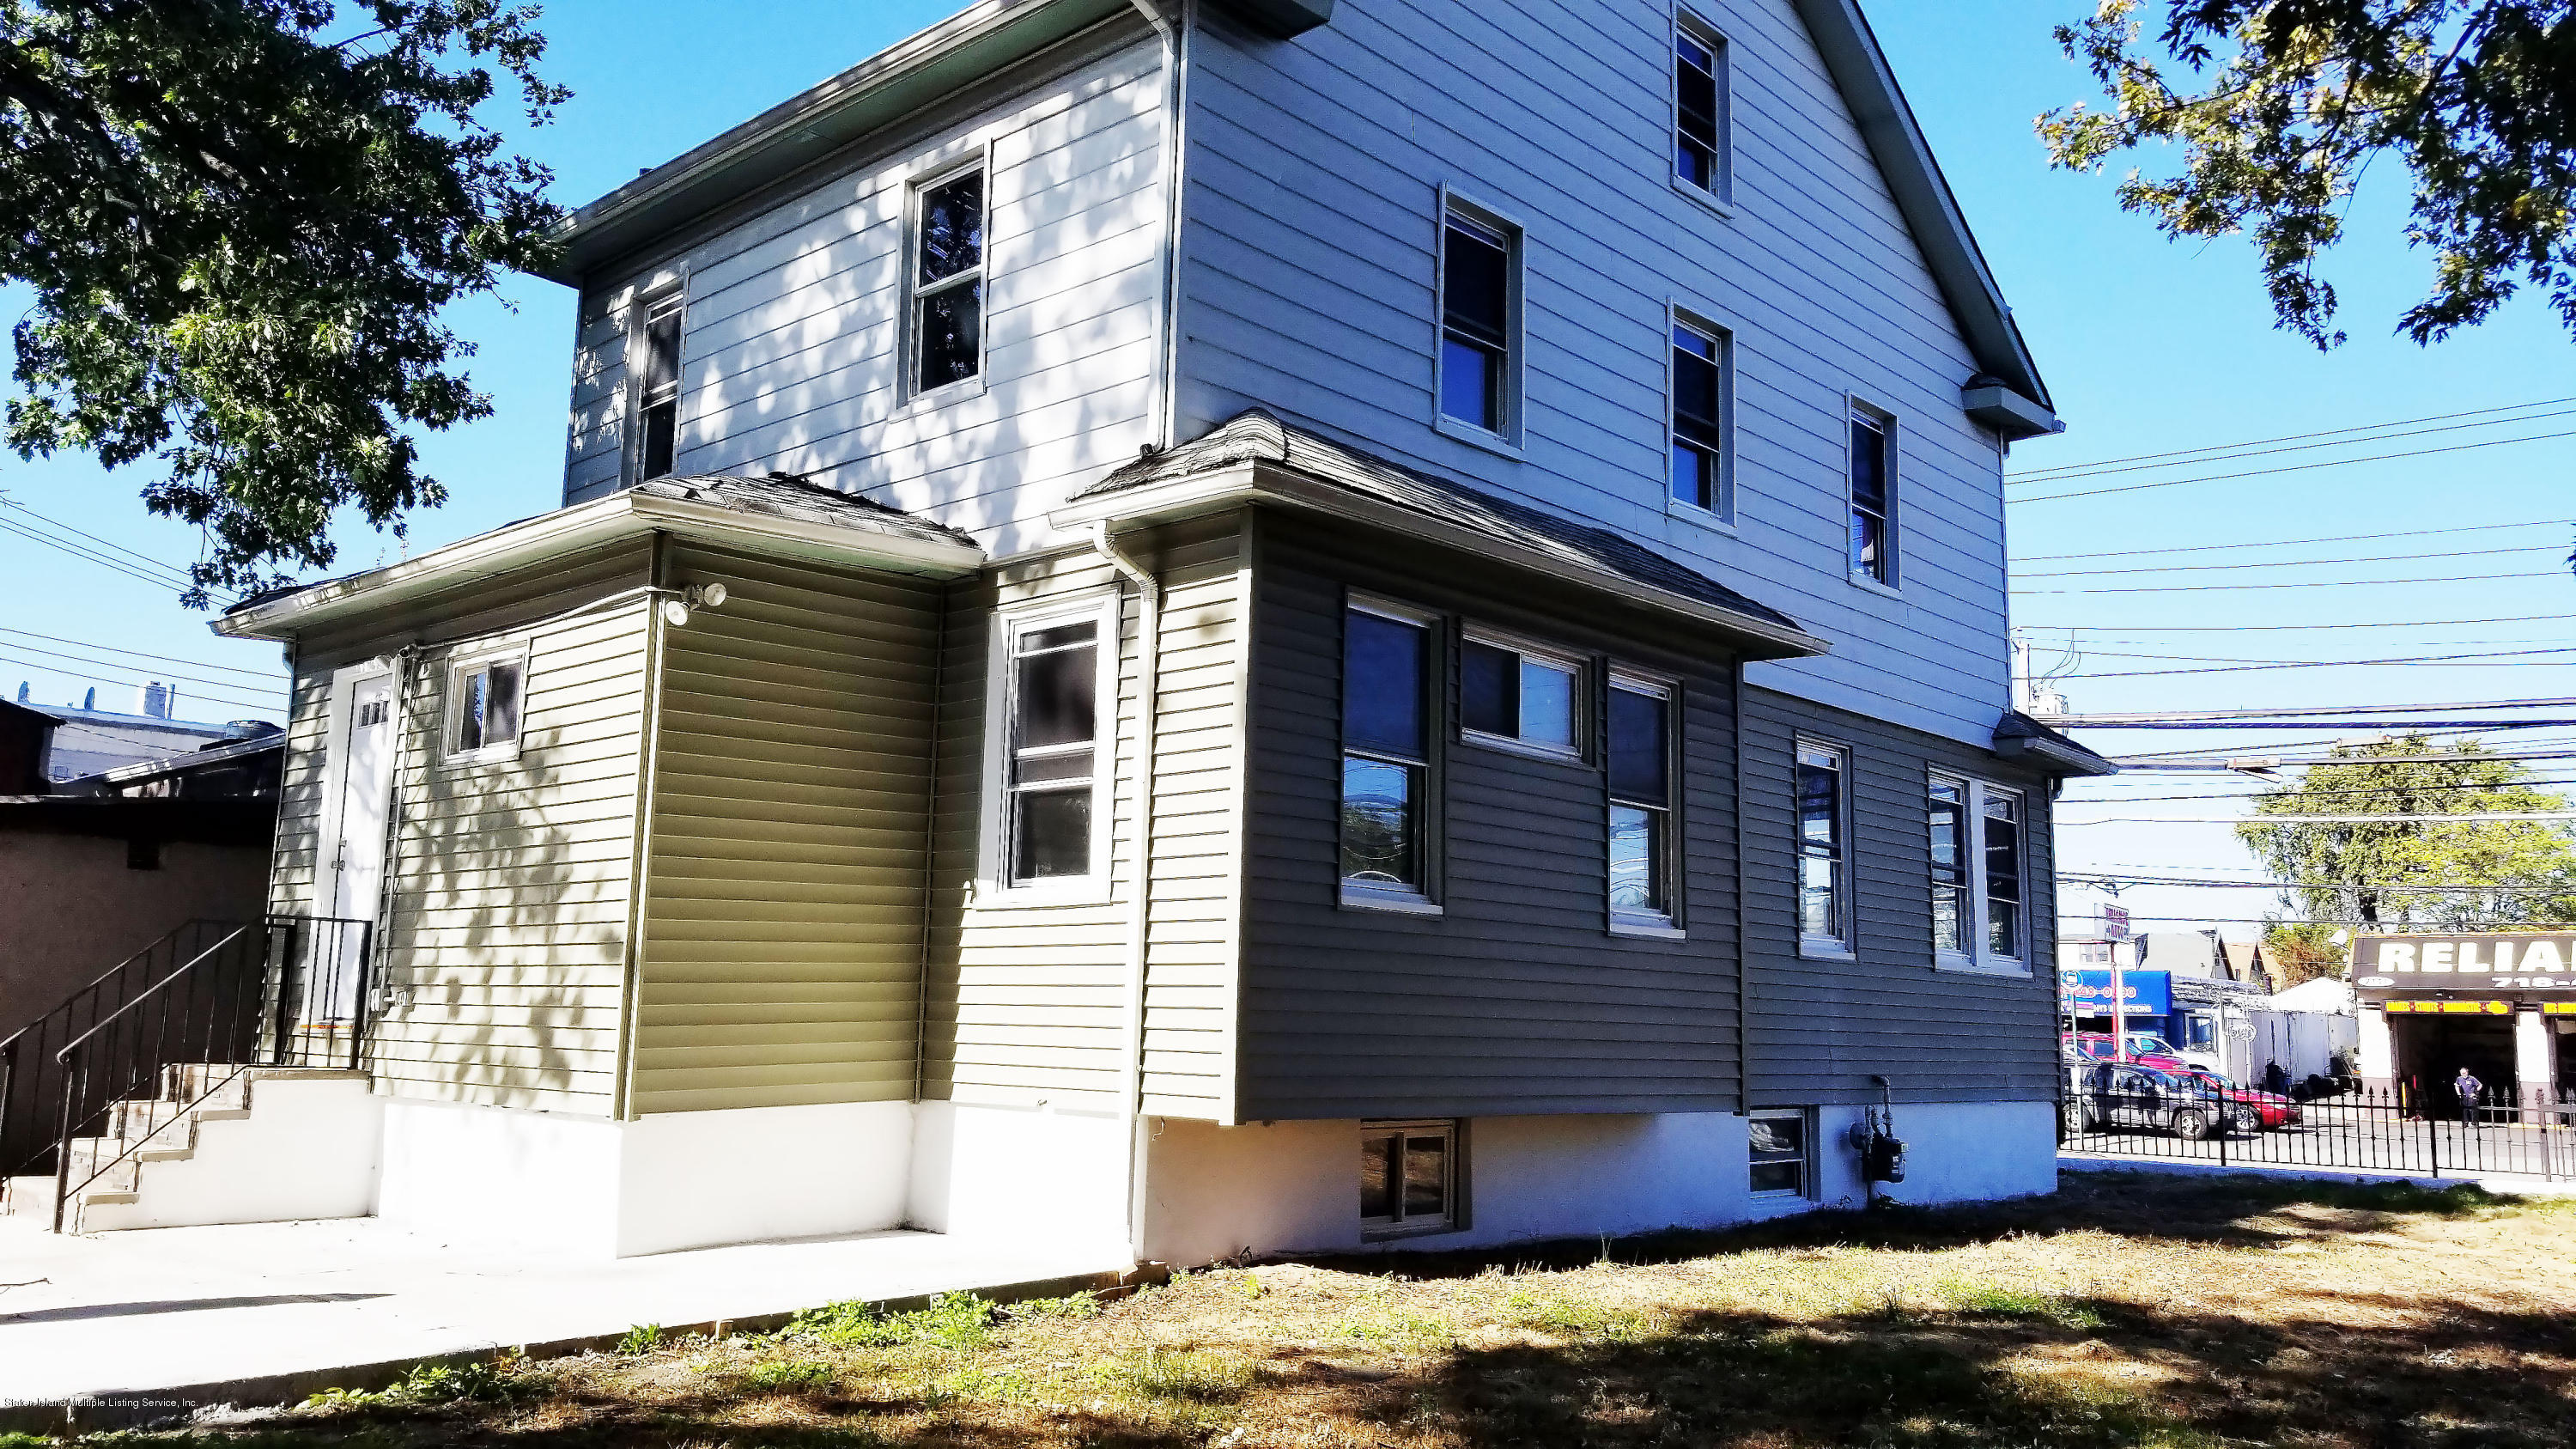 Single Family - Detached 2140 Forest Avenue  Staten Island, NY 10303, MLS-1133604-3